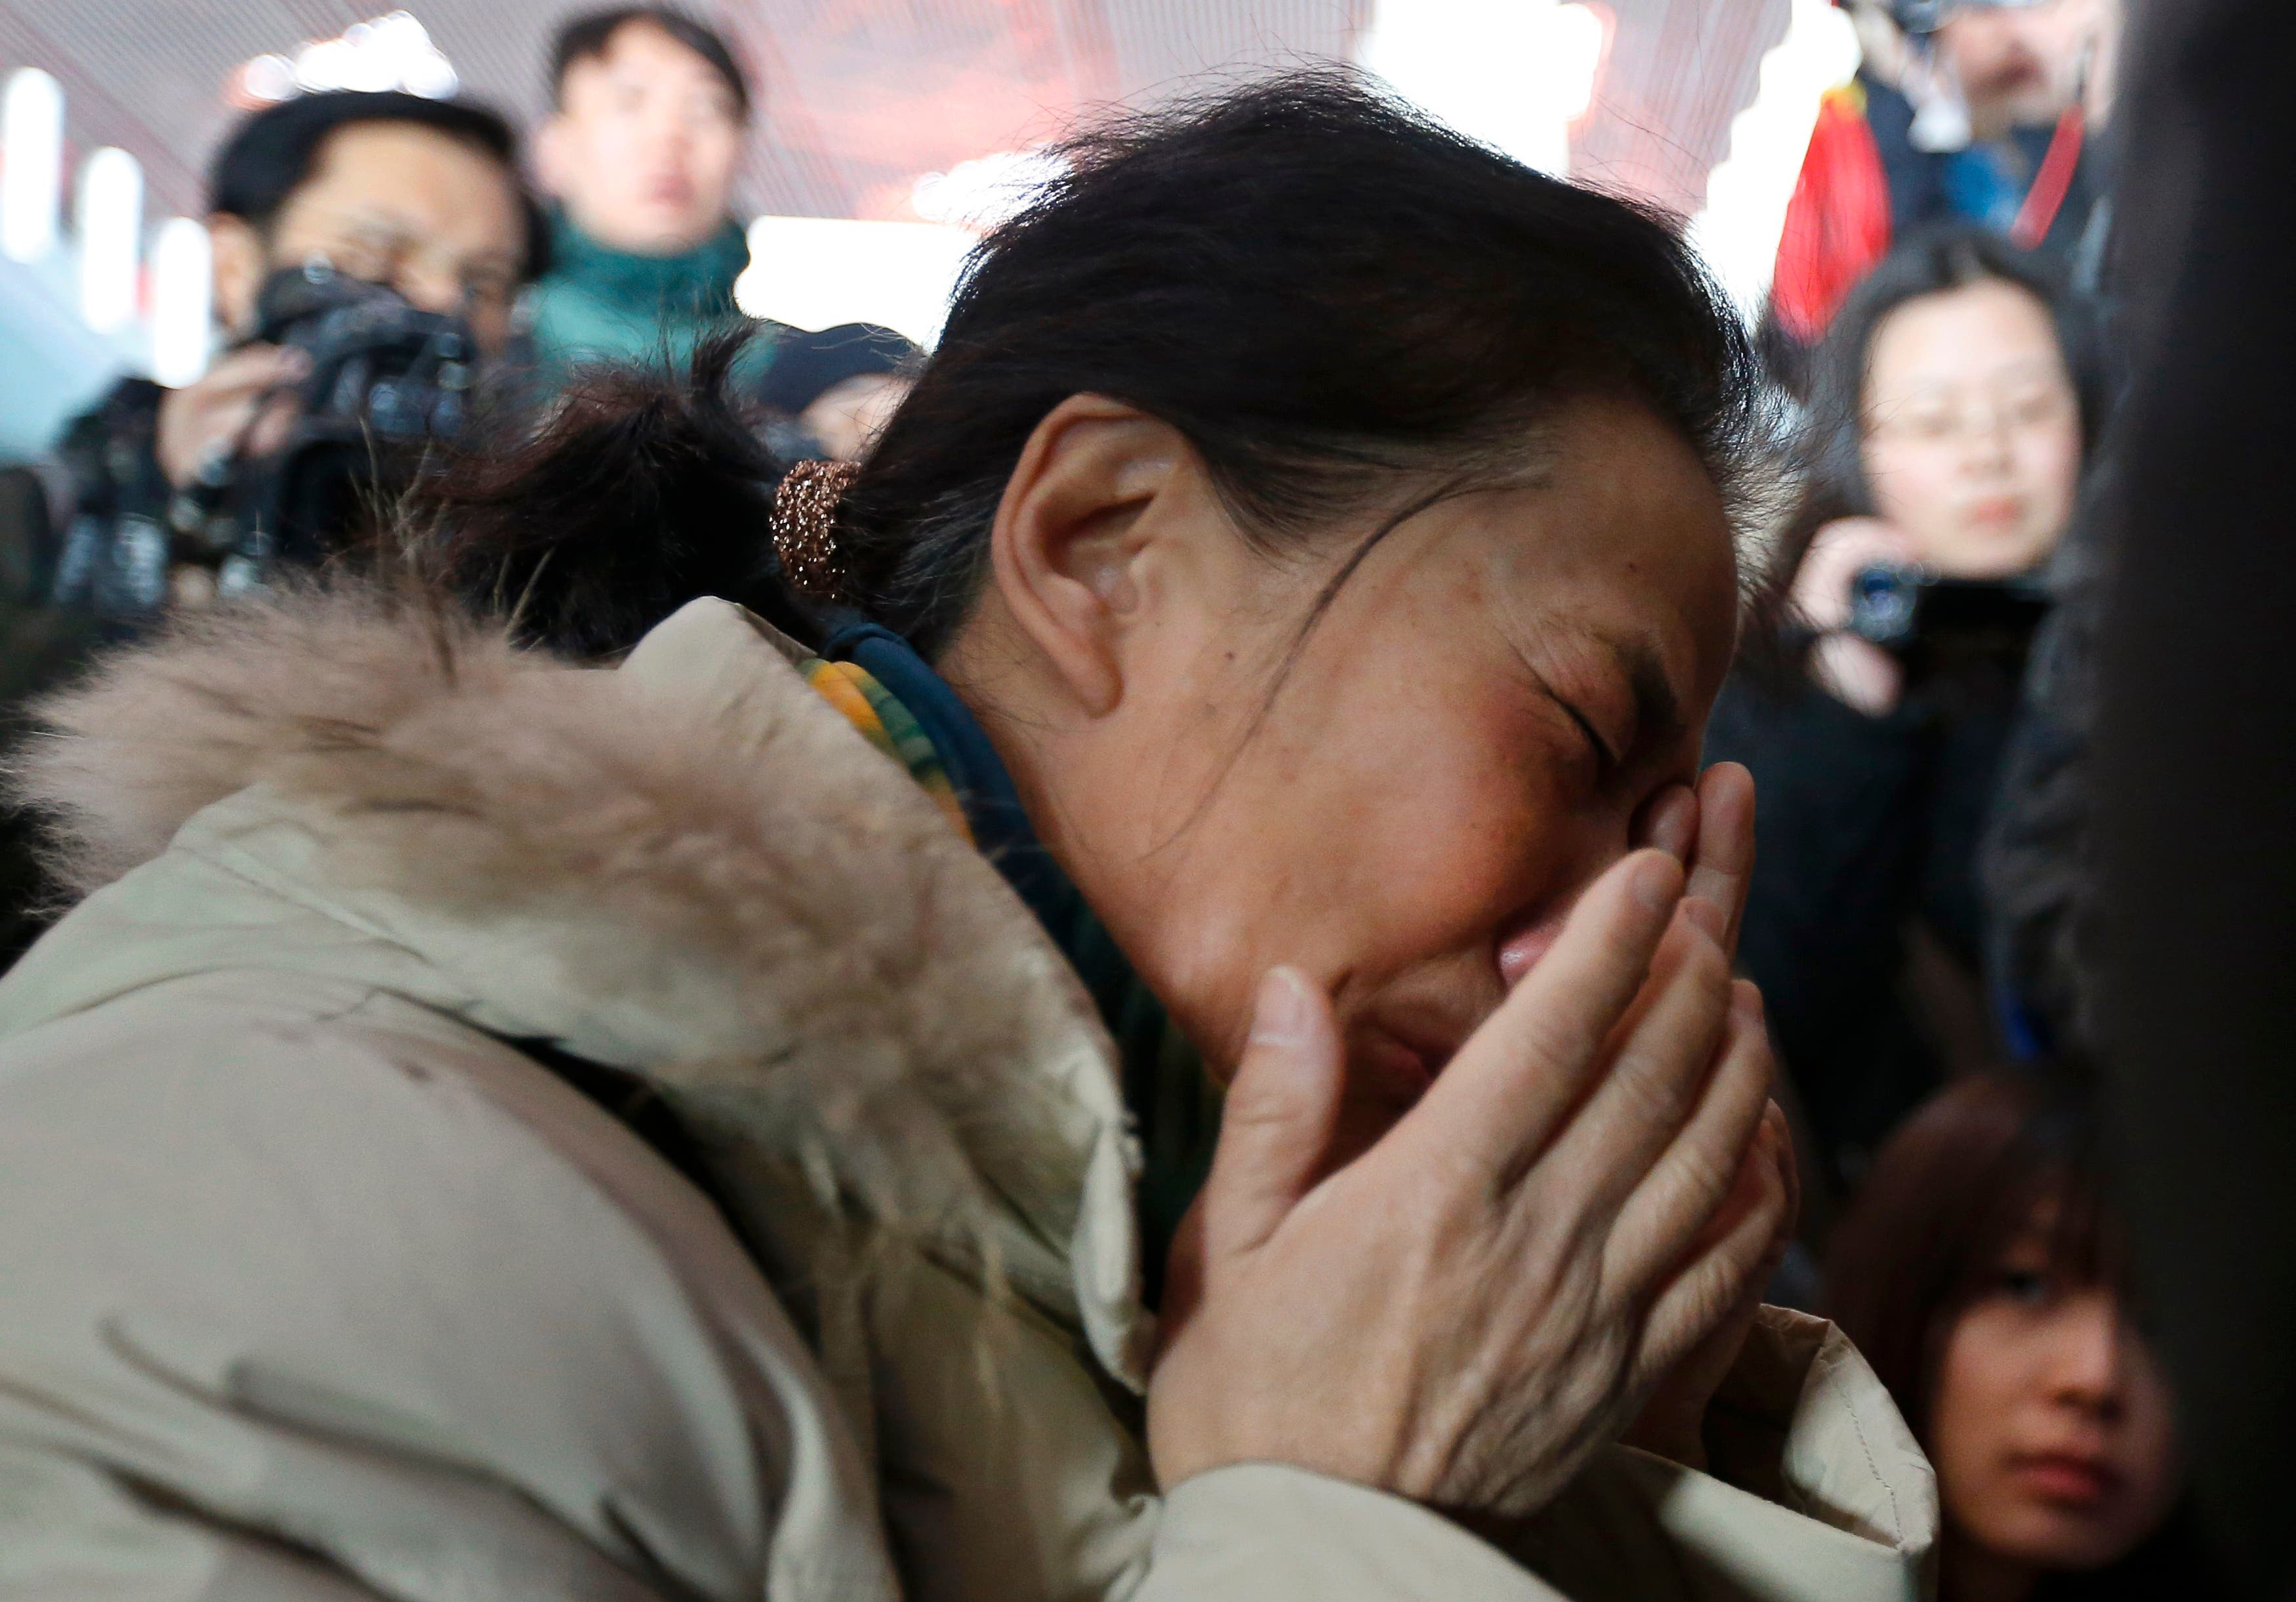 A relative of a passenger onboard Malaysia Airlines flight MH370 cries, surrounded by journalists, at the Beijing Capital International Airport in Beijing March 8, 2014 reuters